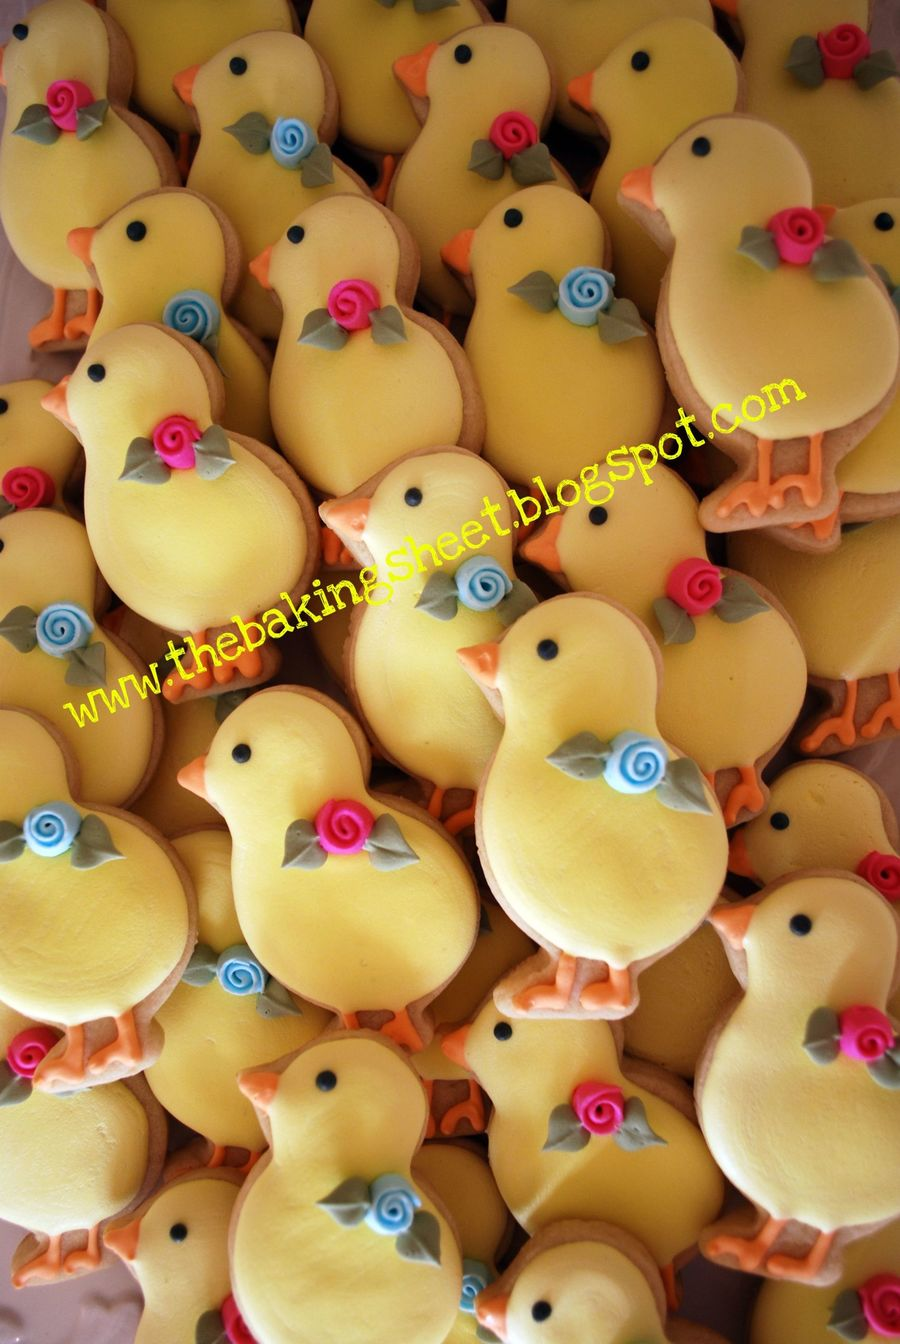 Baby Chicks! on Cake Central